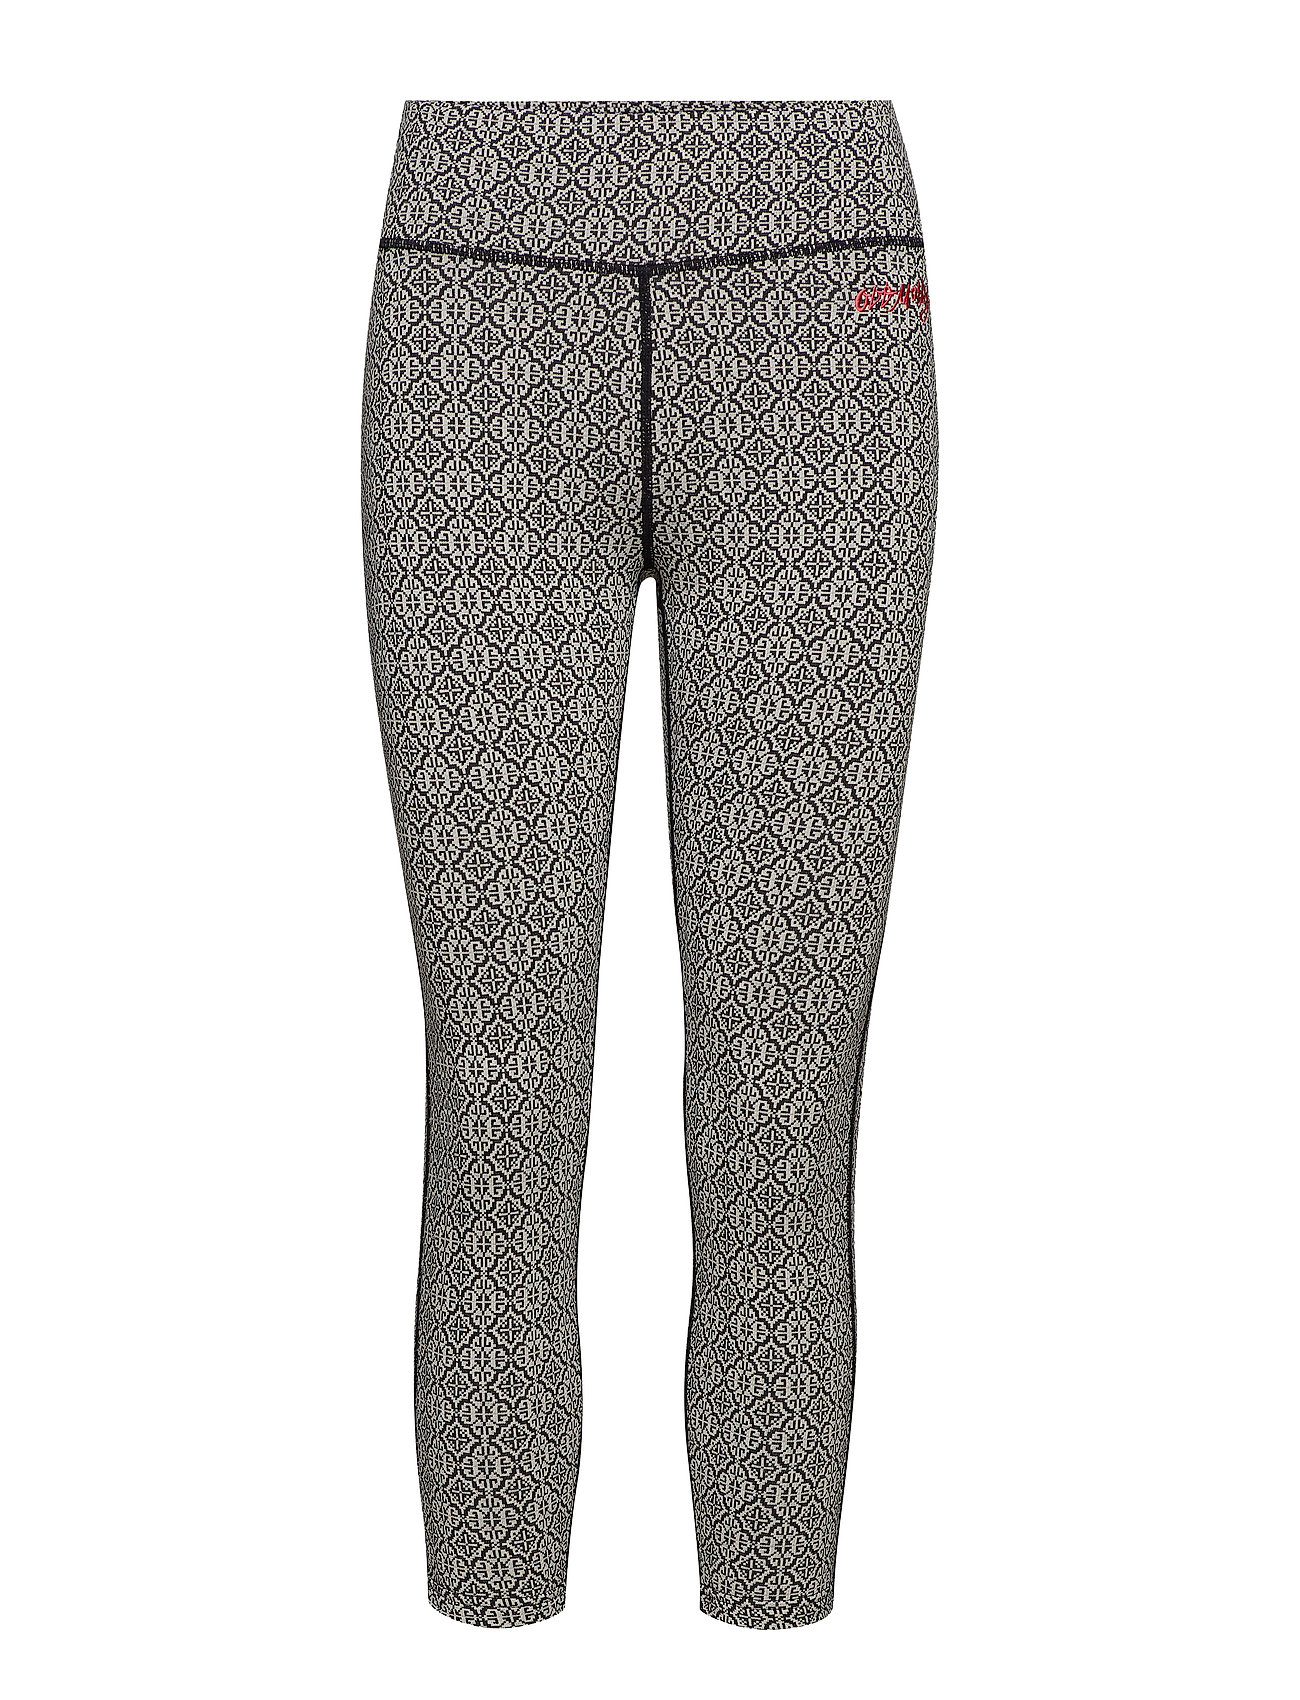 ODD MOLLY ACTIVE WEAR spin to win base layer tights